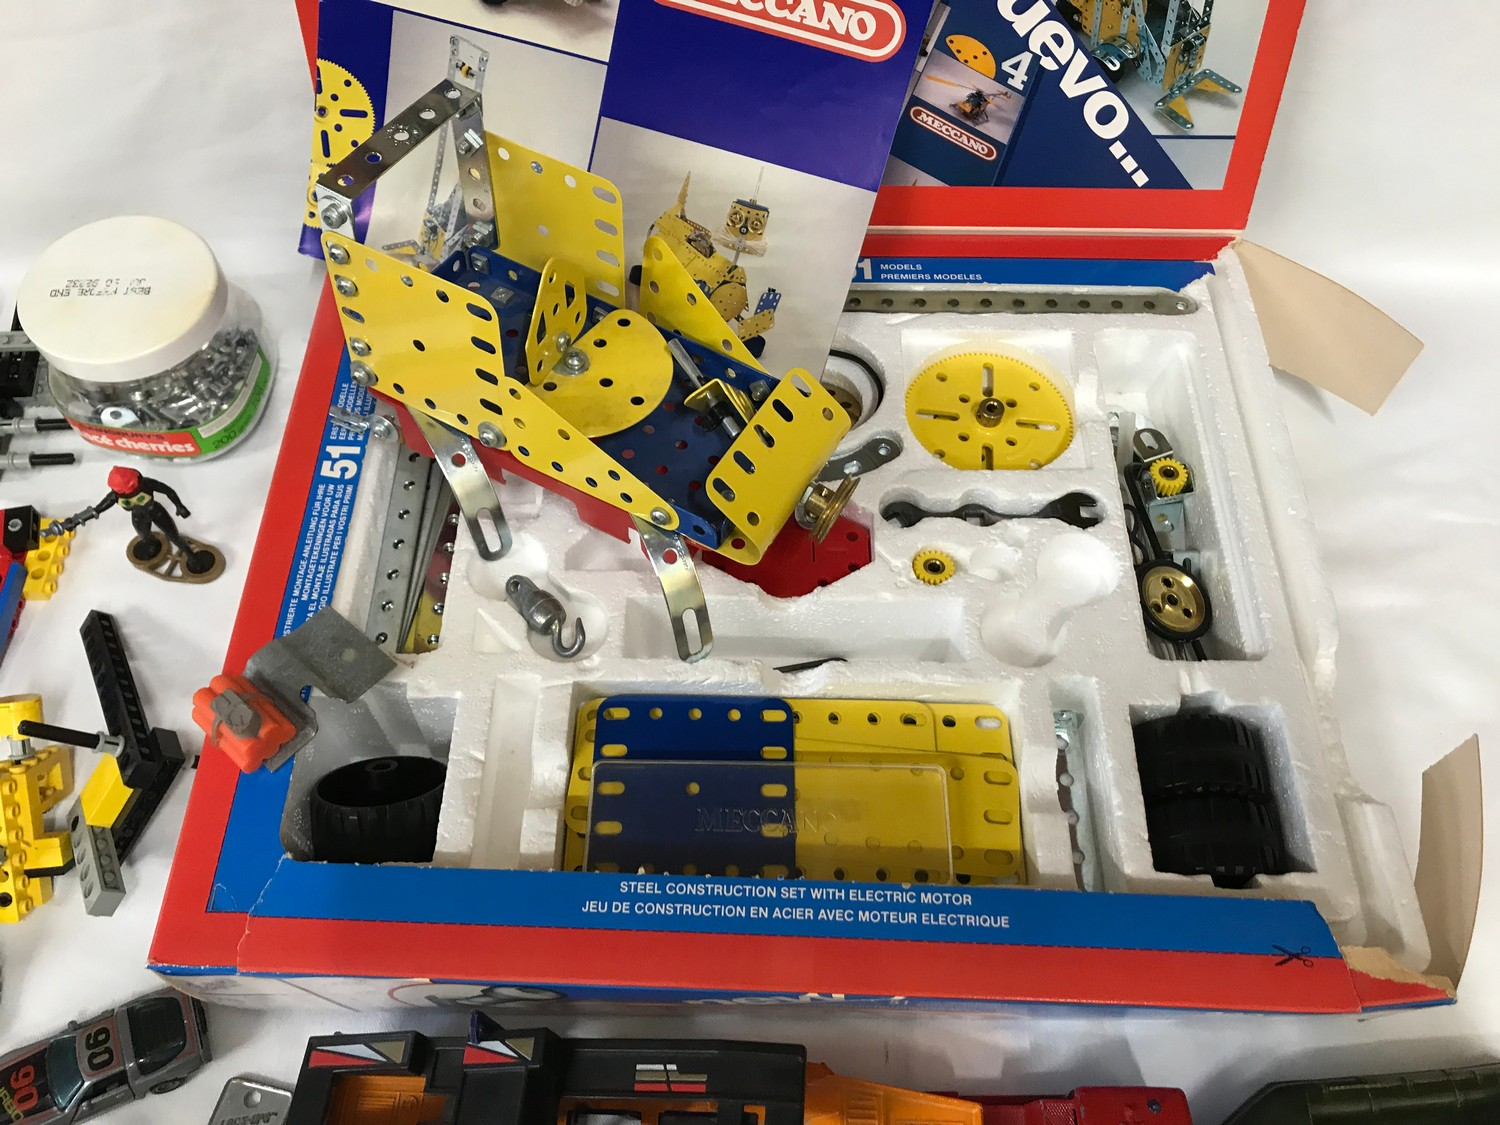 Meccano set number 4, boxed, assorted Lego pieces and plastic vehicles, playworn.Condition - Image 2 of 4